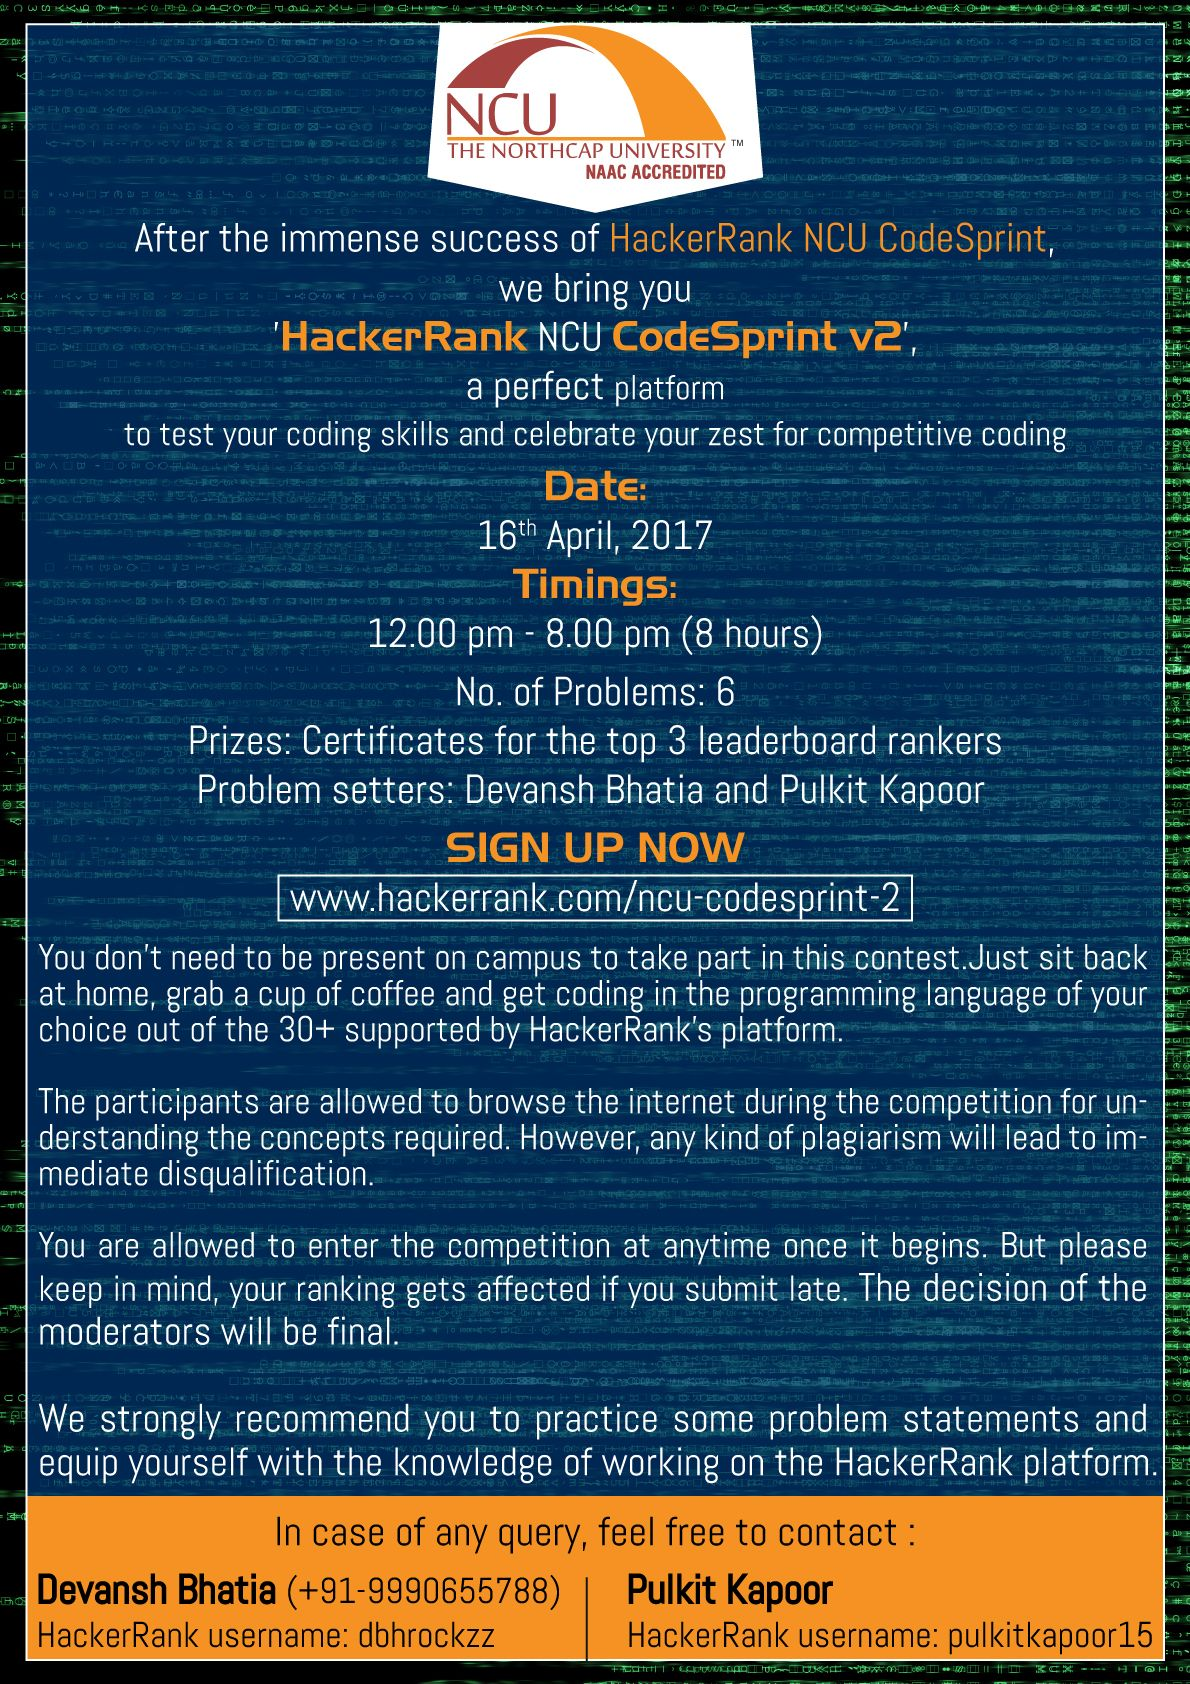 After the immense success of HackerRank NCU CodeSprint, we bring you